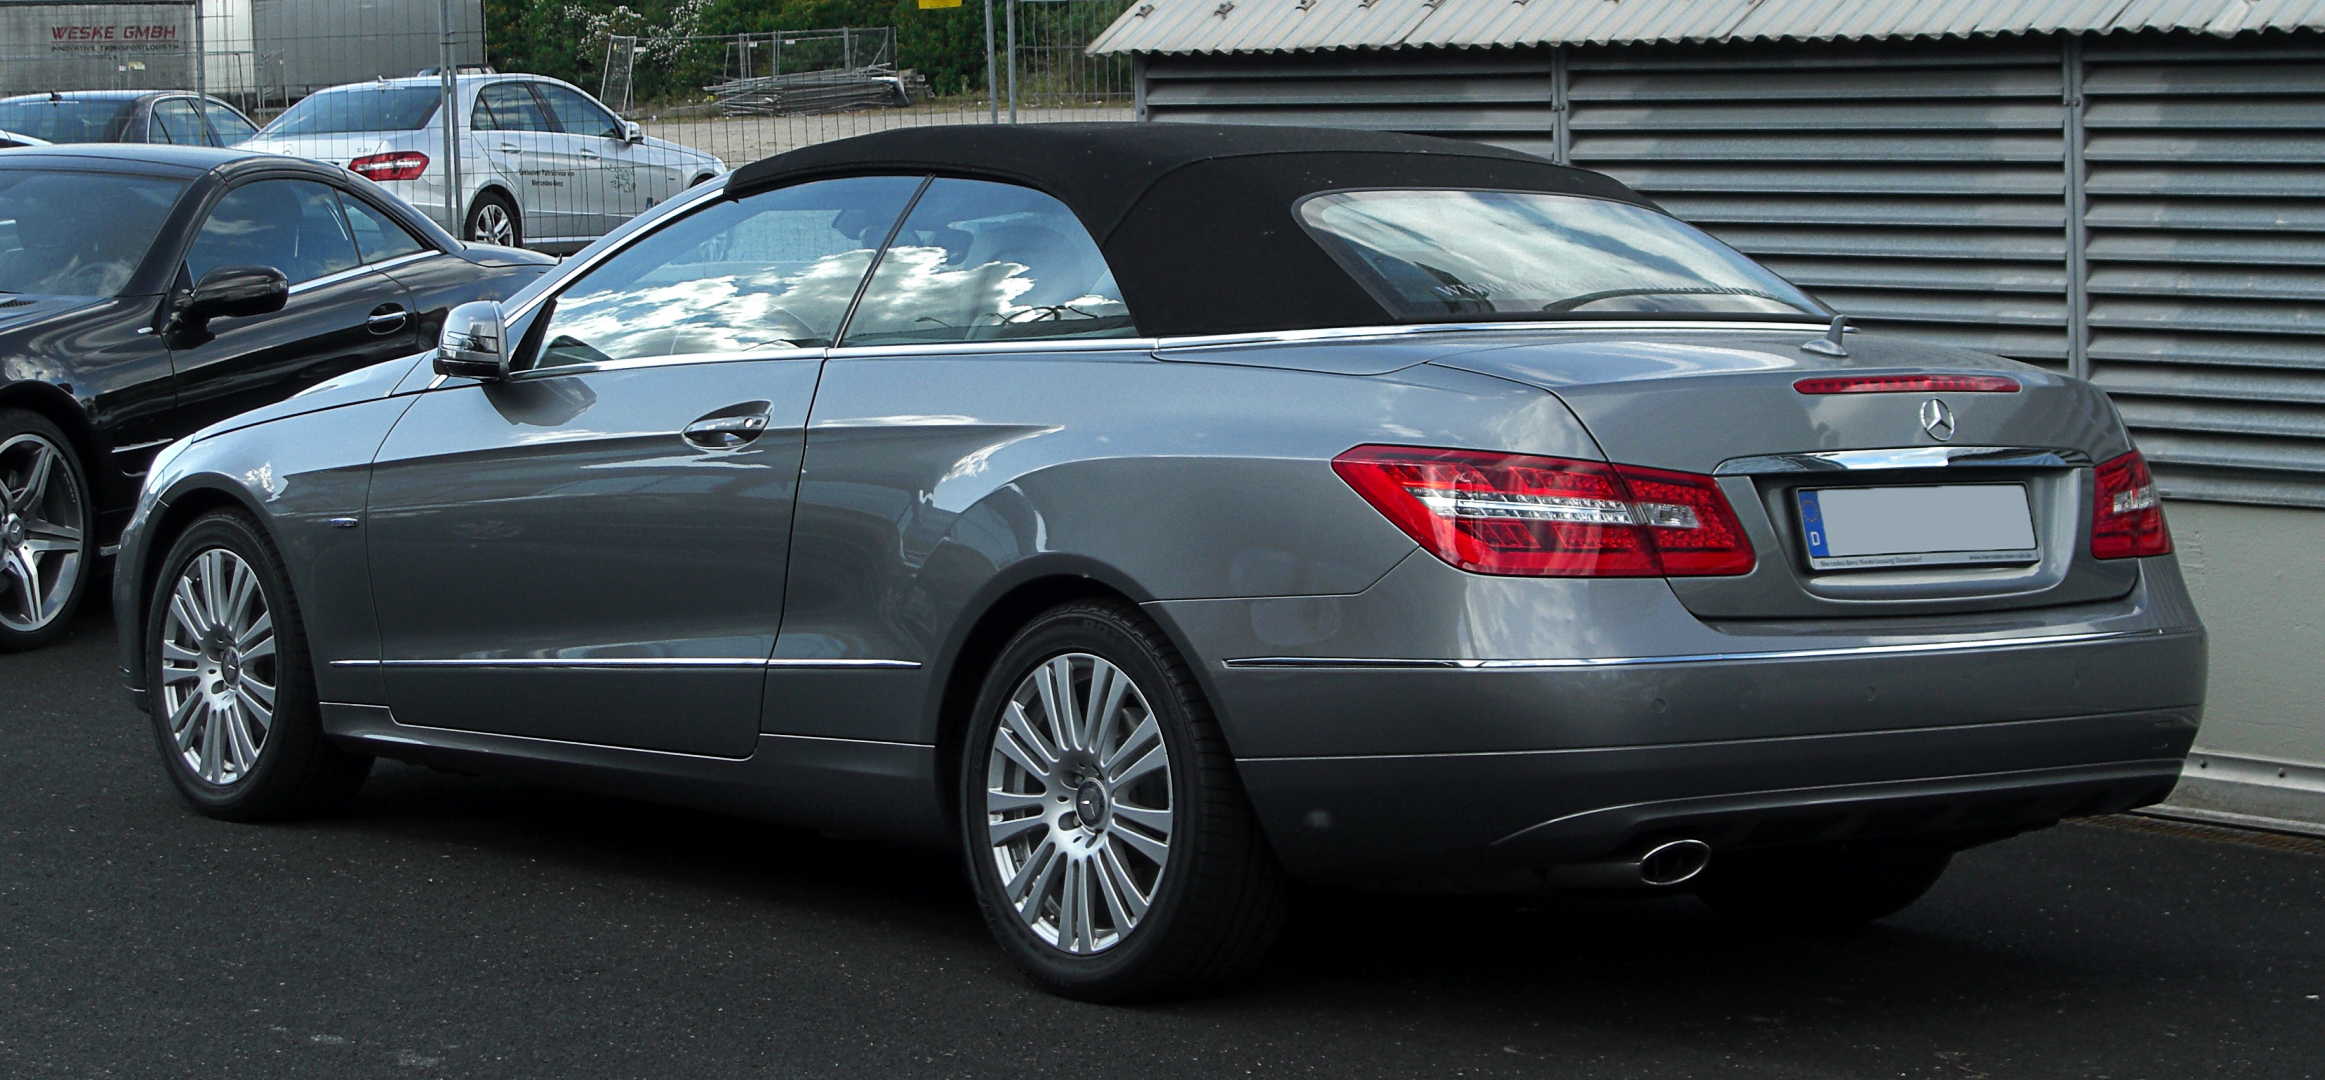 file:mercedes-benz e 220 cdi blueefficiency cabriolet (a 207